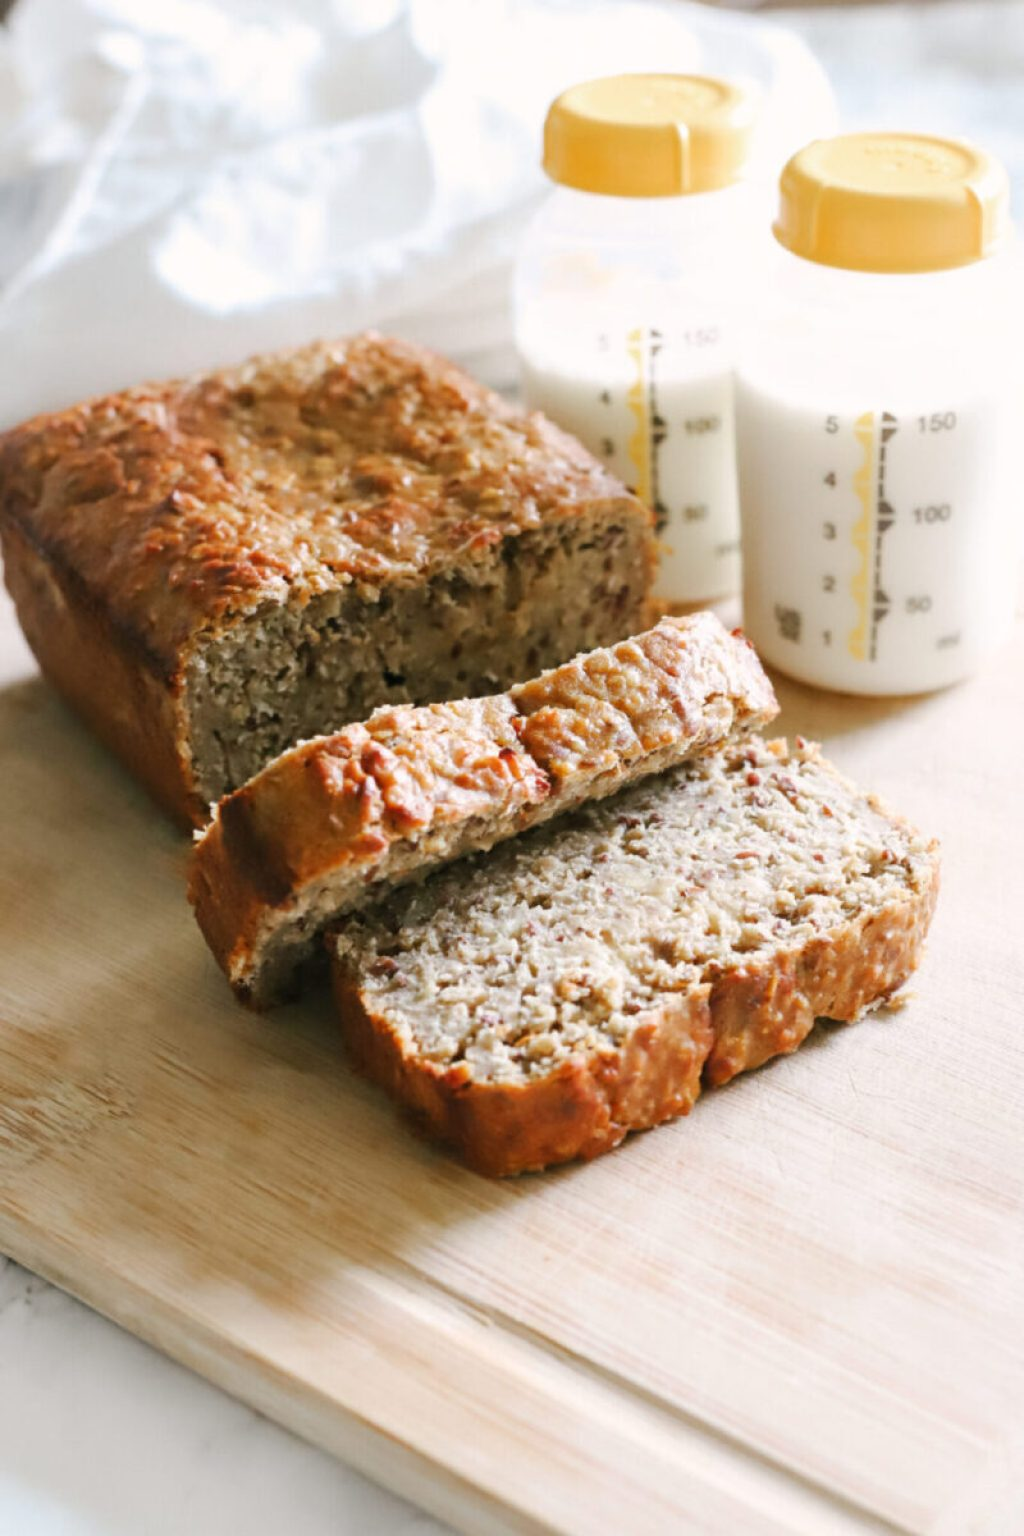 A delicious and healthy way to boost your milk supply in a hurry. For richer, nutrient-dense breast milk when breastfeeding. women's health   boost milk supply   milk flow   breastmilk   debittered brewer's yeast   flaxseed   oatmeal   gluten-free   lactation recipes   lactation banana bread   gluten-free   healthy   postnatal   postpartum   pumping   breastfeeding supplements   breastfeeding tips   Increase Milk Supply   Motherhood   Nursing